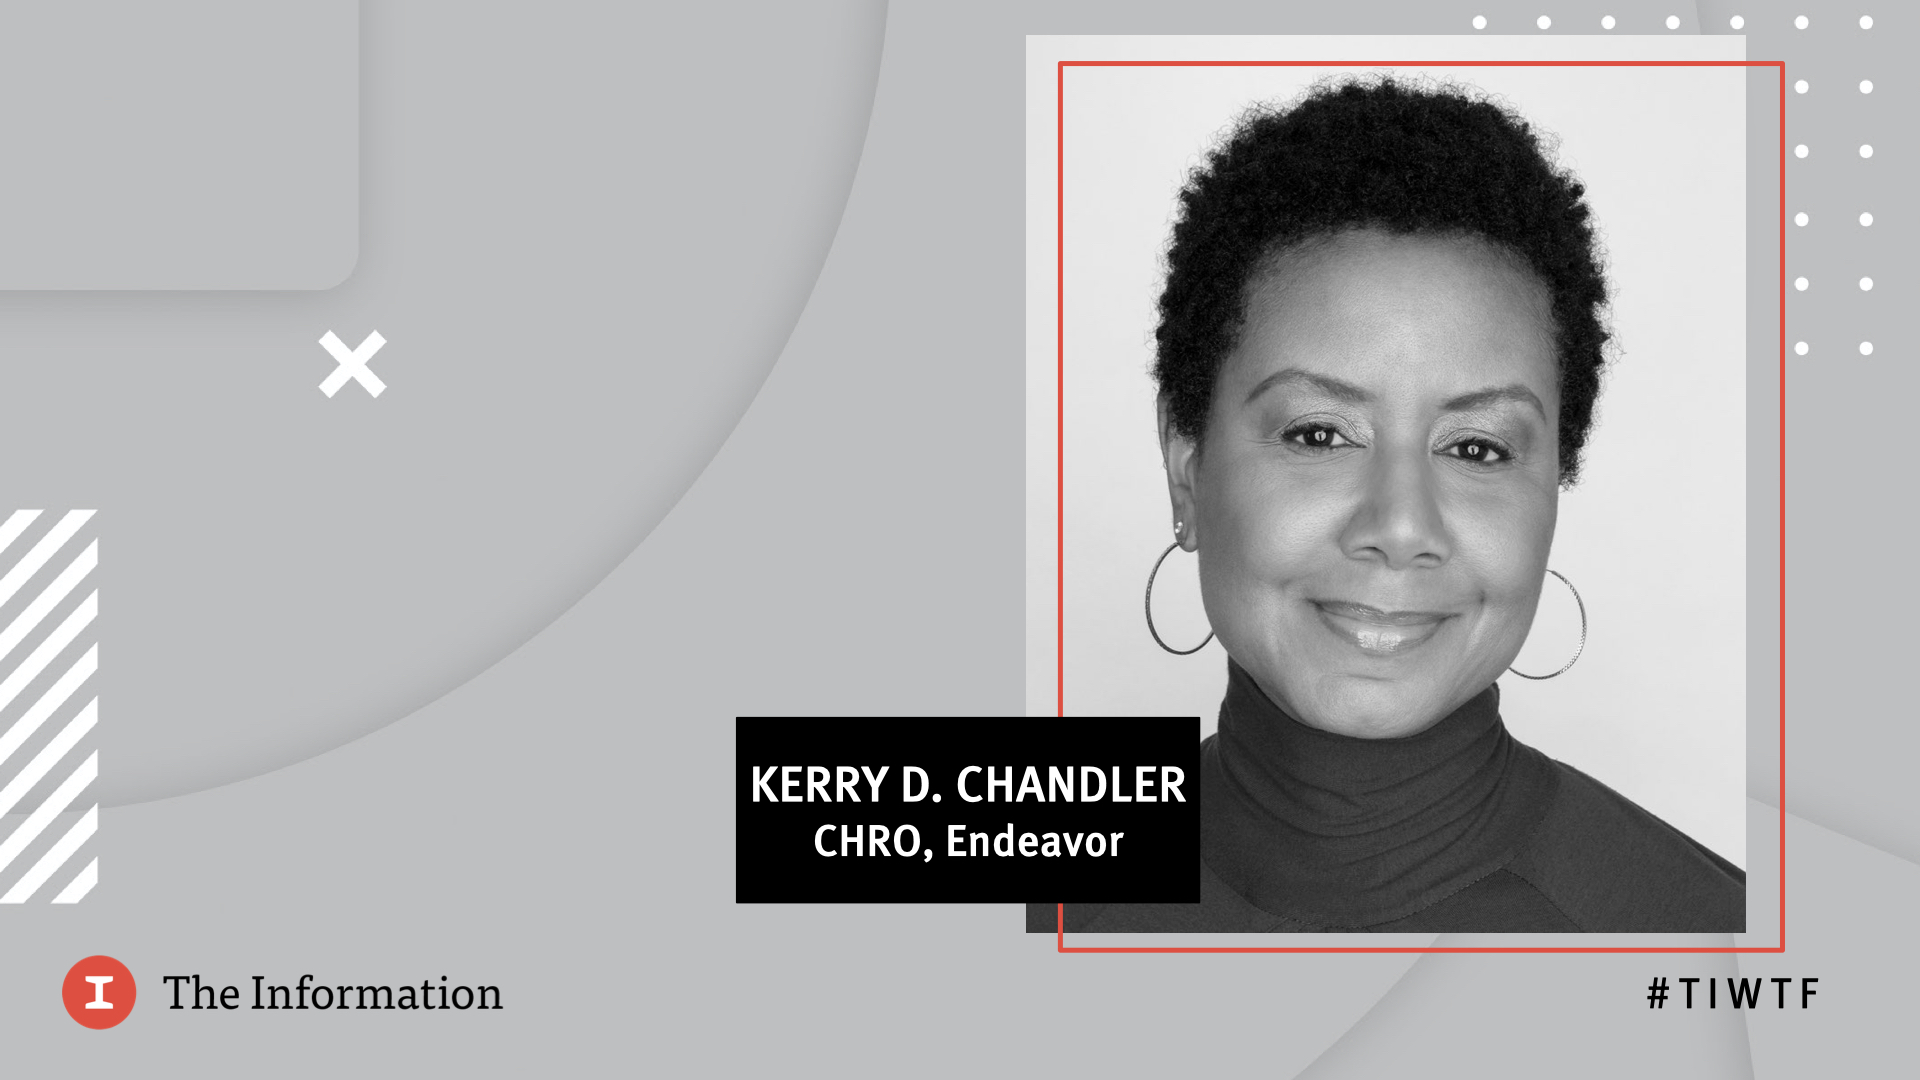 WTF 2020 - Endeavor's Chief Human Resources Officer Kerry D. Chandler in conversation with Jessical Toonkel, reporter at The Information